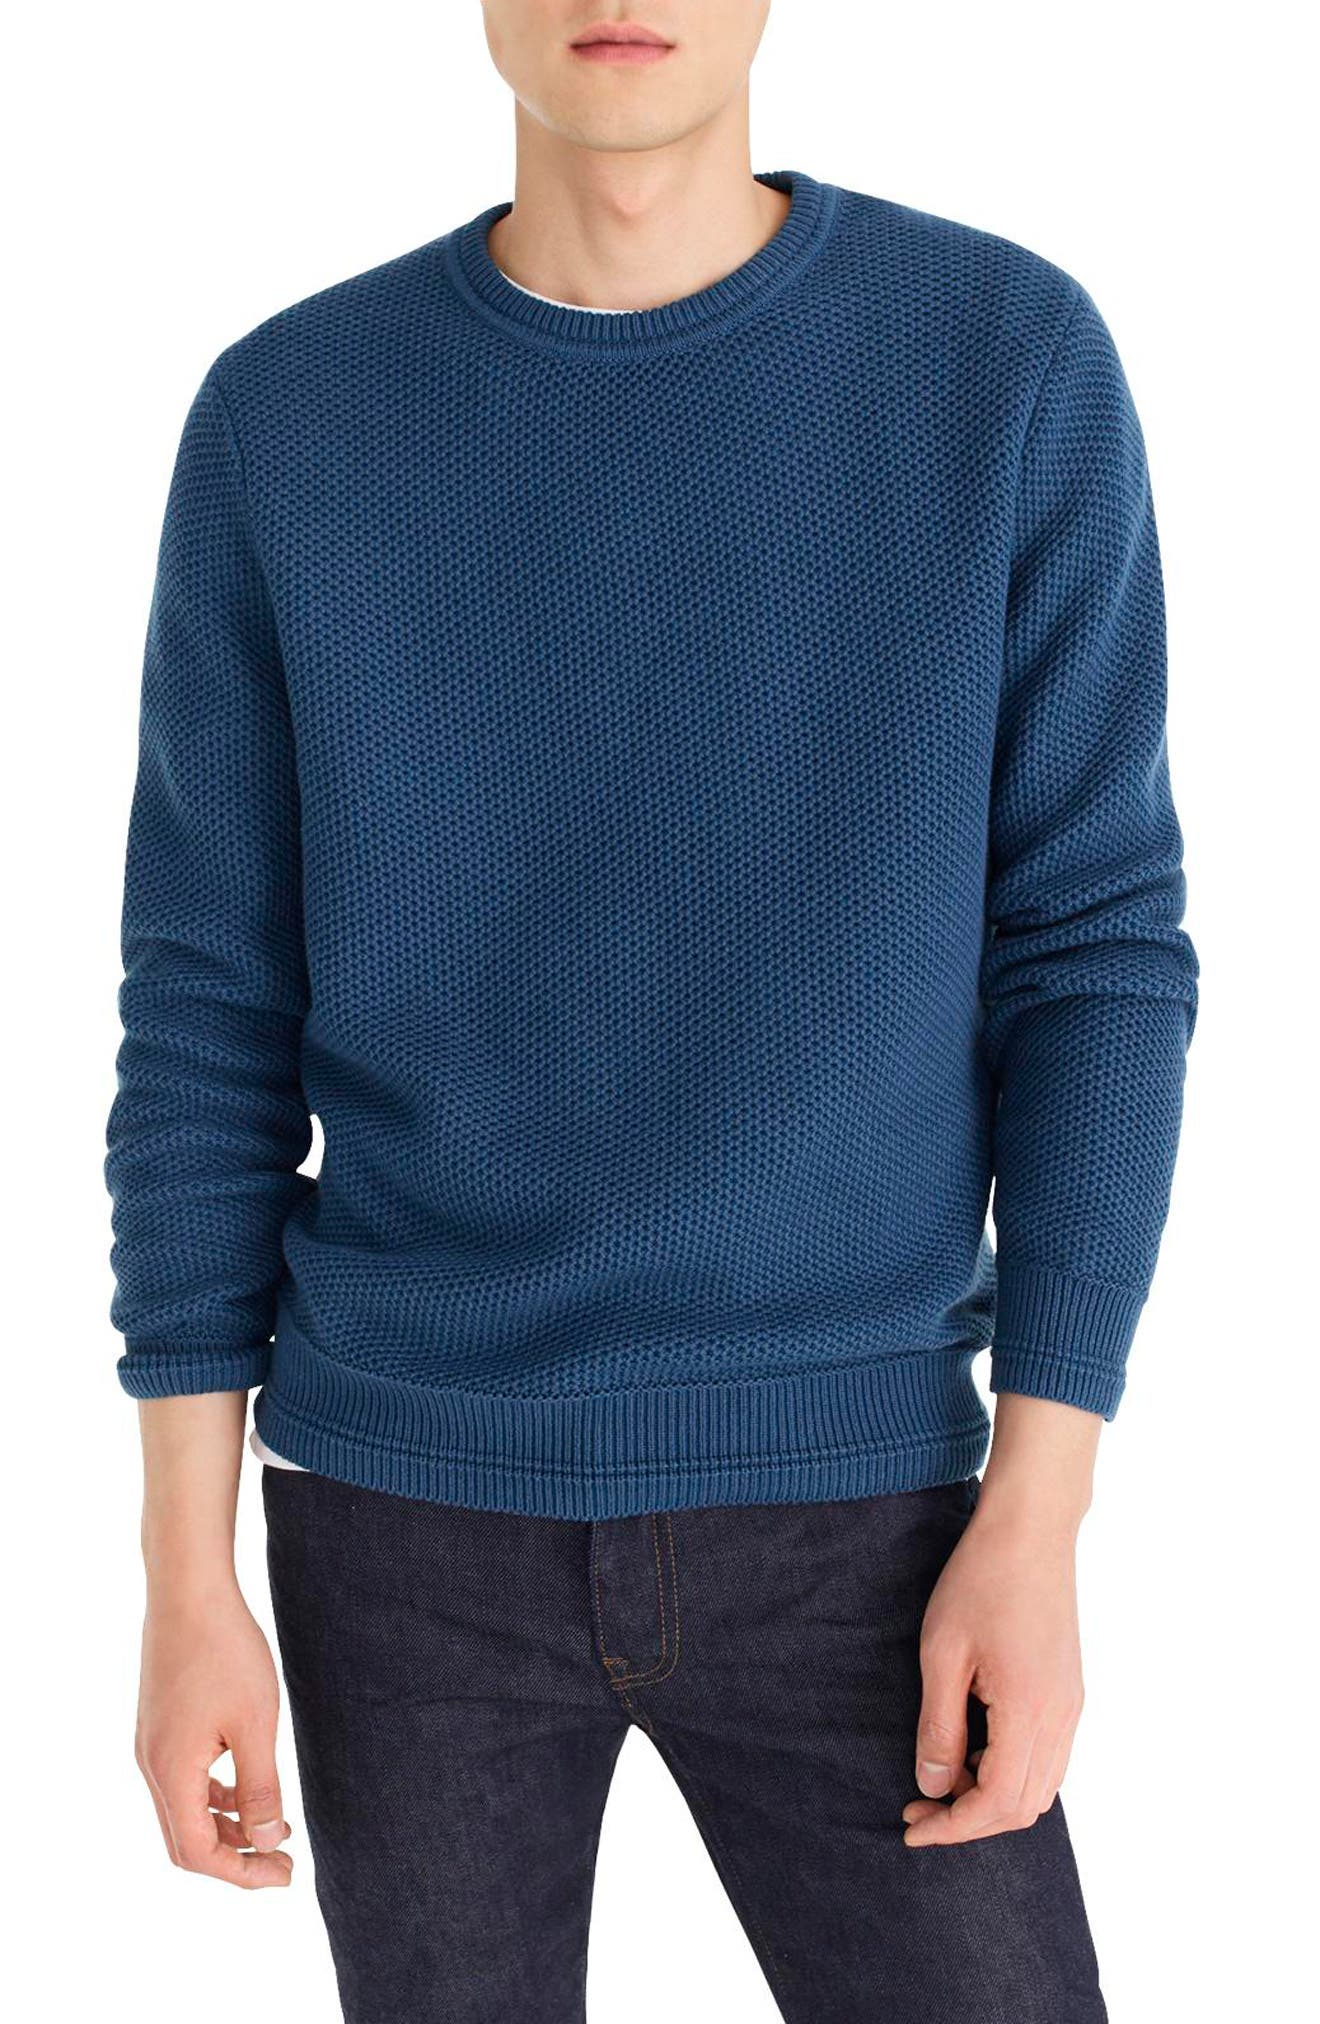 Honeycomb Cotton Crewneck Sweater,                             Main thumbnail 1, color,                             400